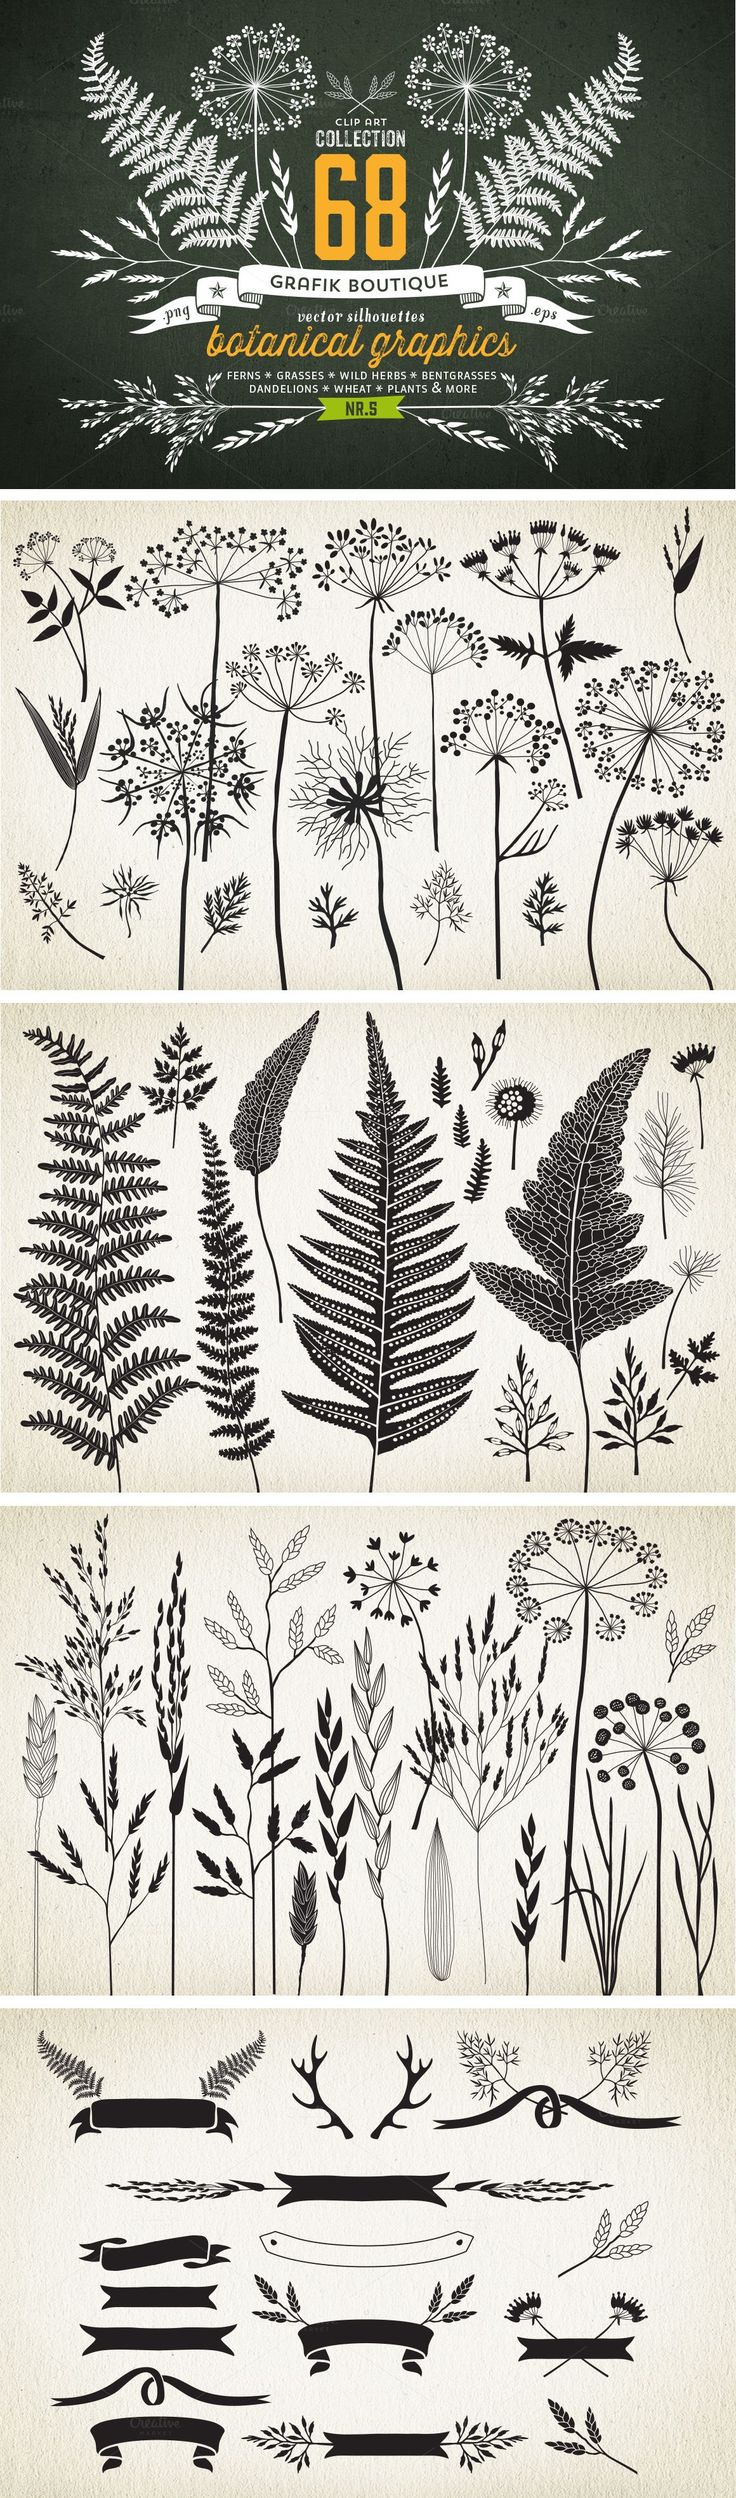 Botanical element illustrations… *IDEA* try printing to give a sense of surroundings? or layering in lively scrapbook format? #Woodburningart